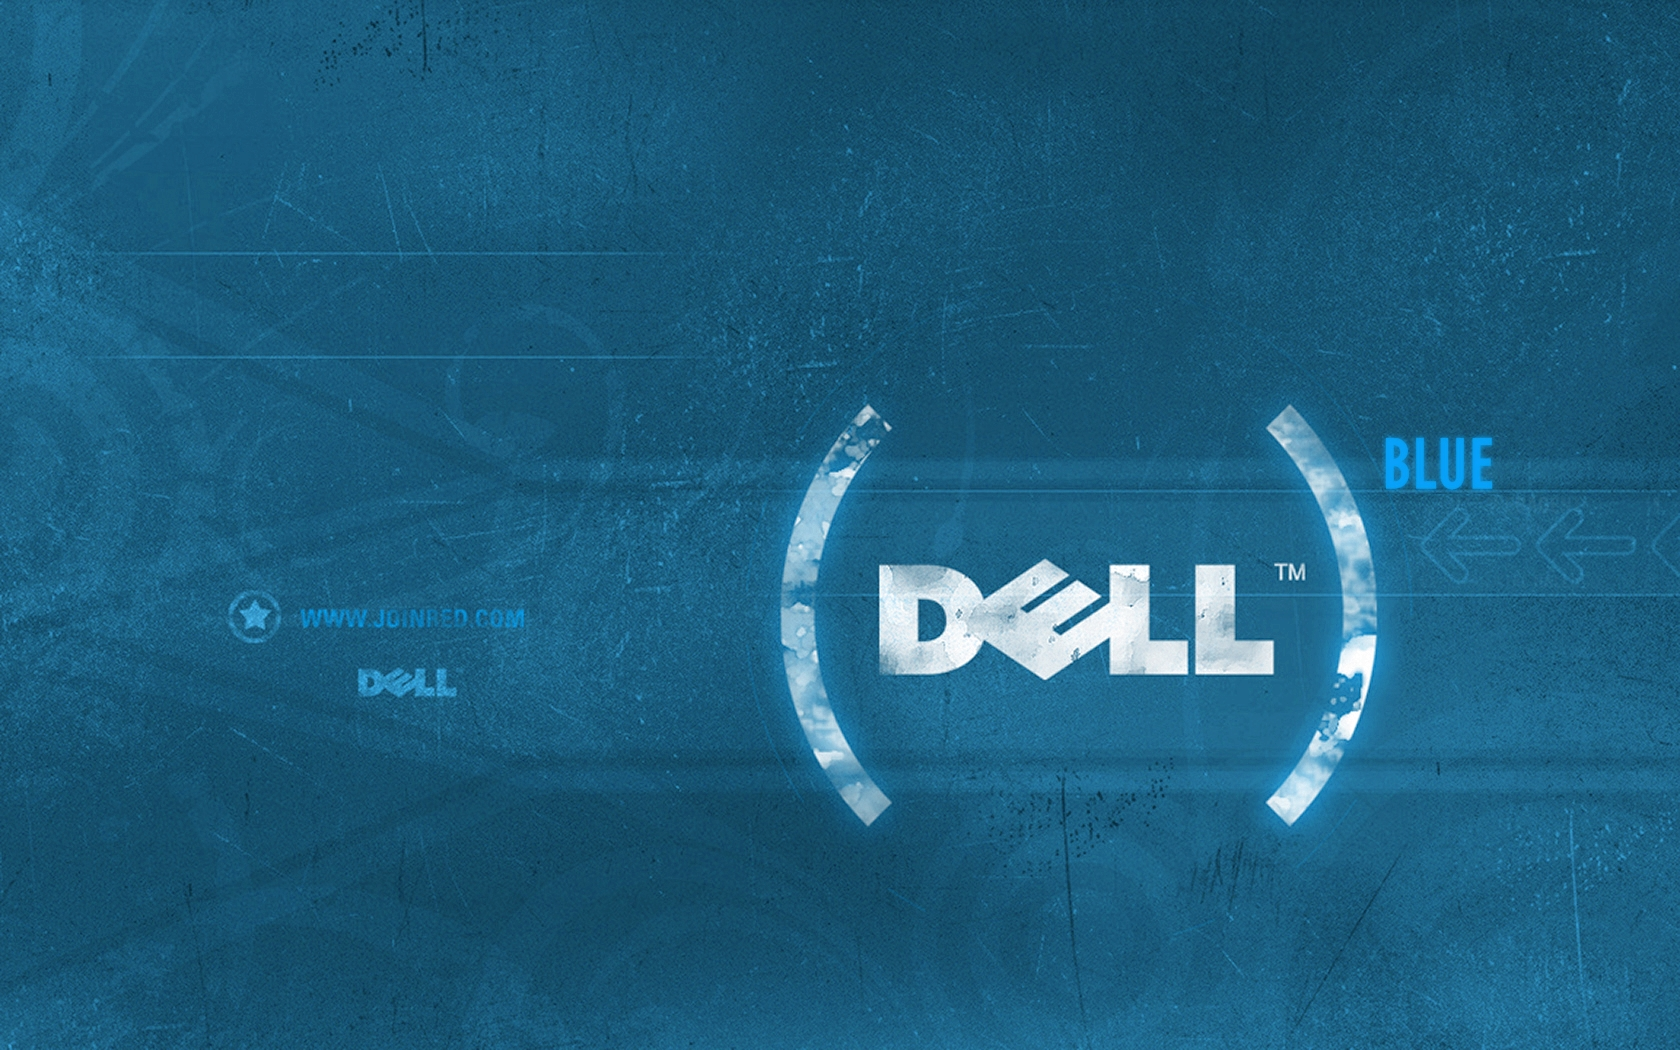 1680x1050 > Dell Wallpapers